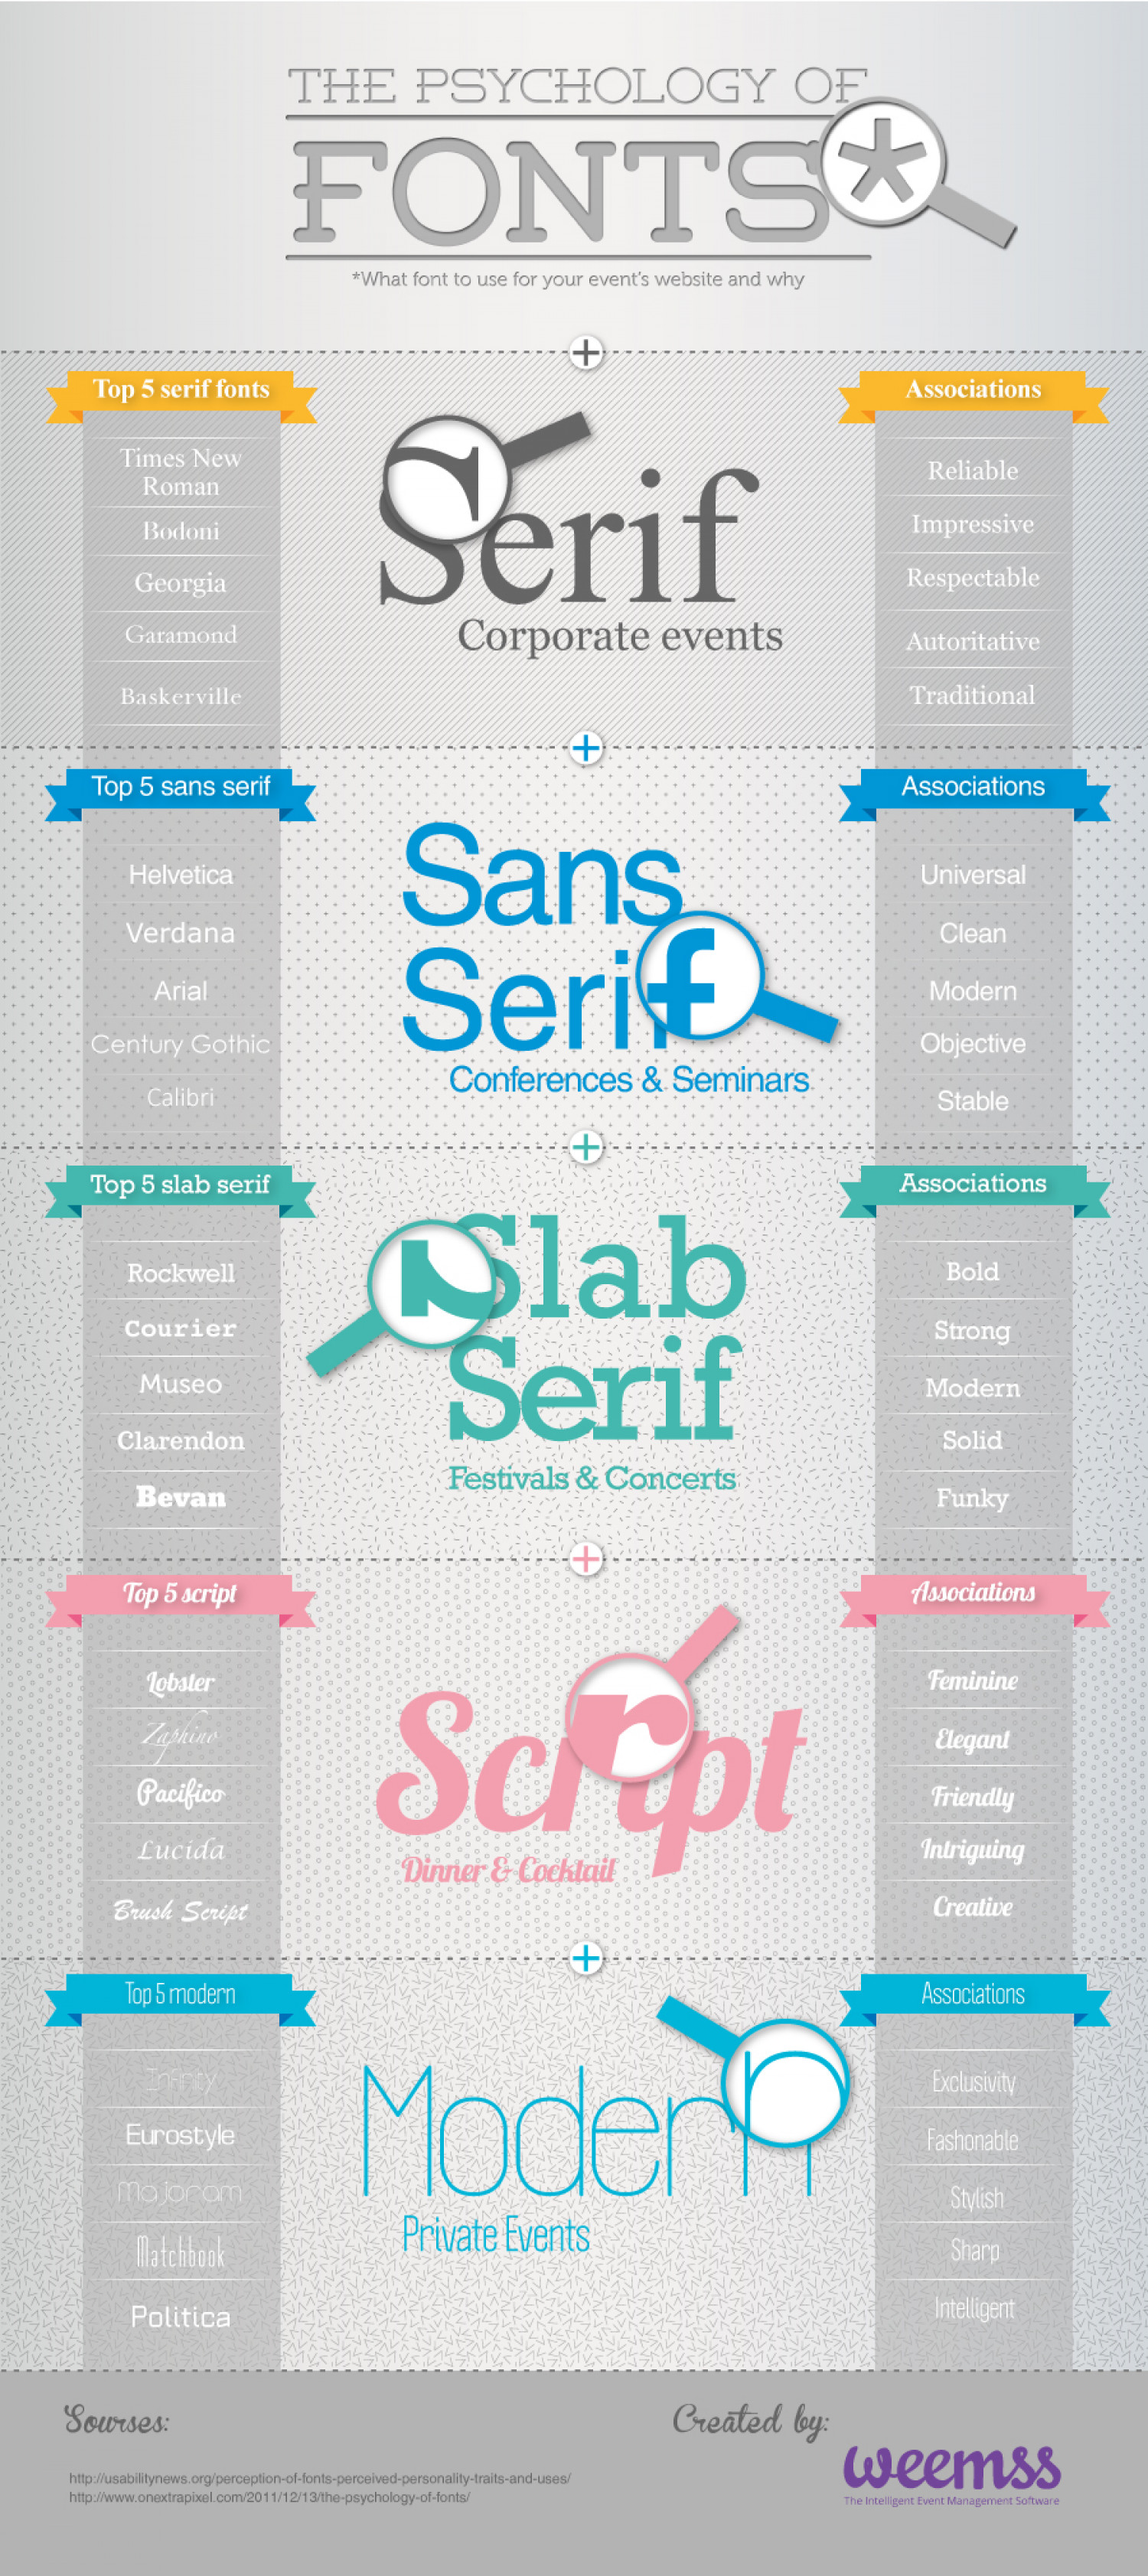 The Psychology of fonts in Event Management Infographic